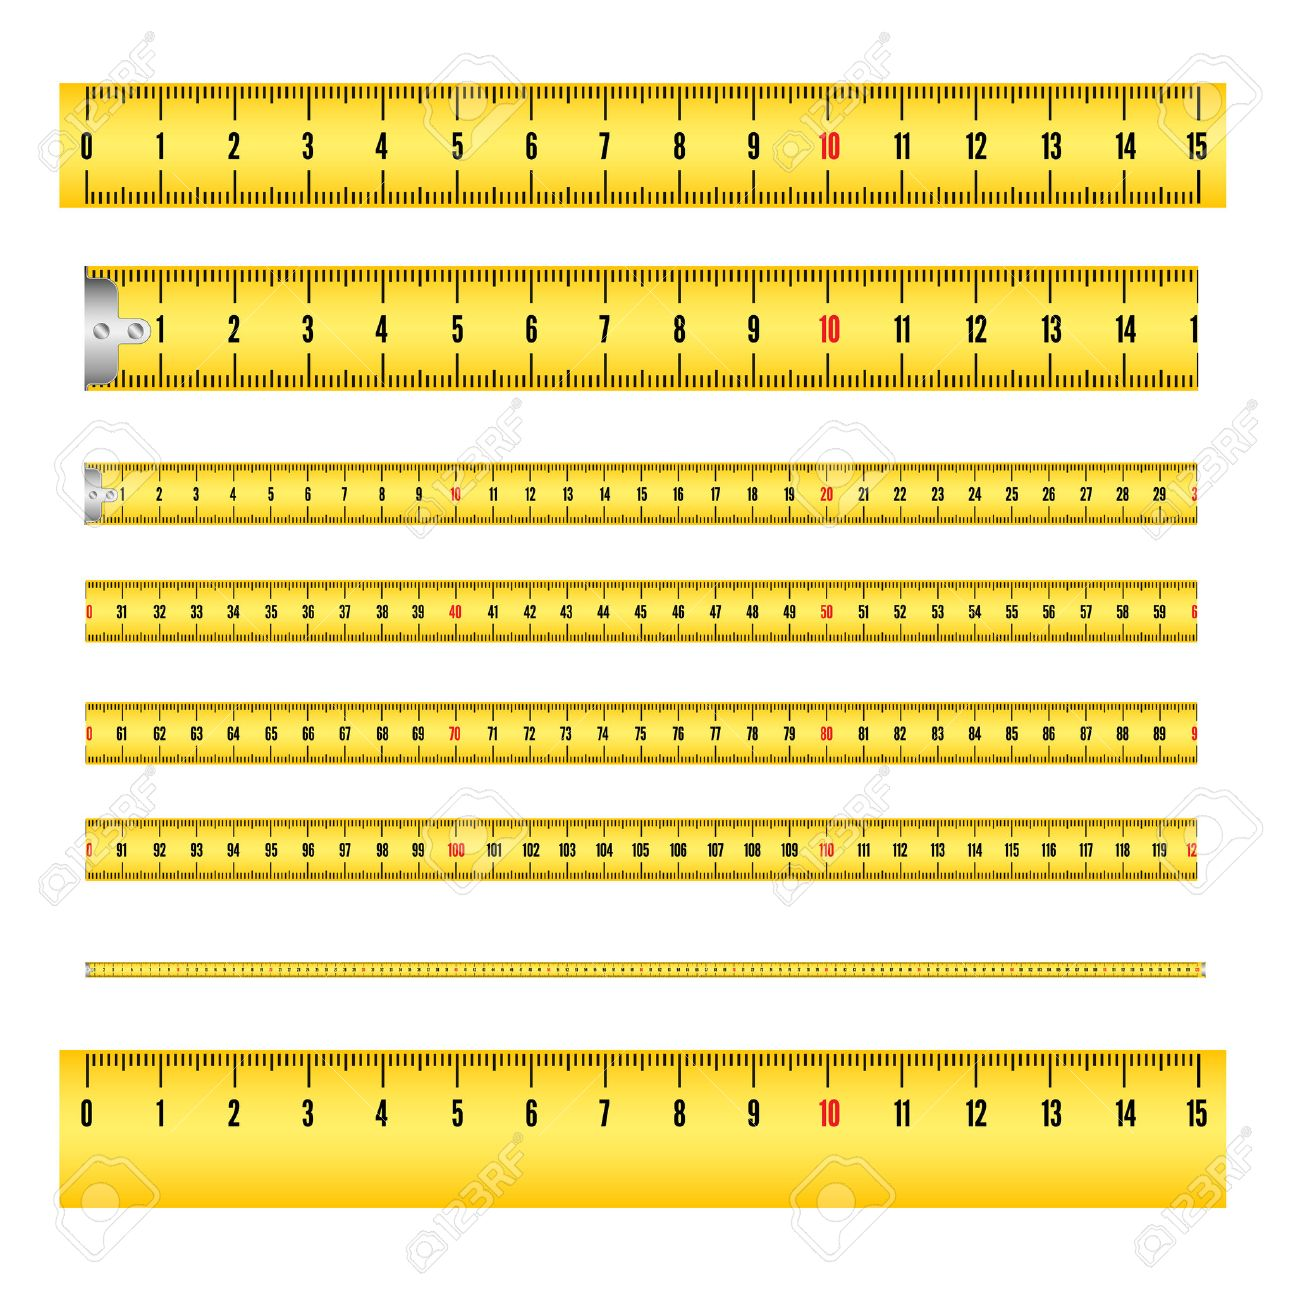 worksheet Ruler Measurement measuring tape in mm for tool roulette and ruler royalty free stock vector 27158635